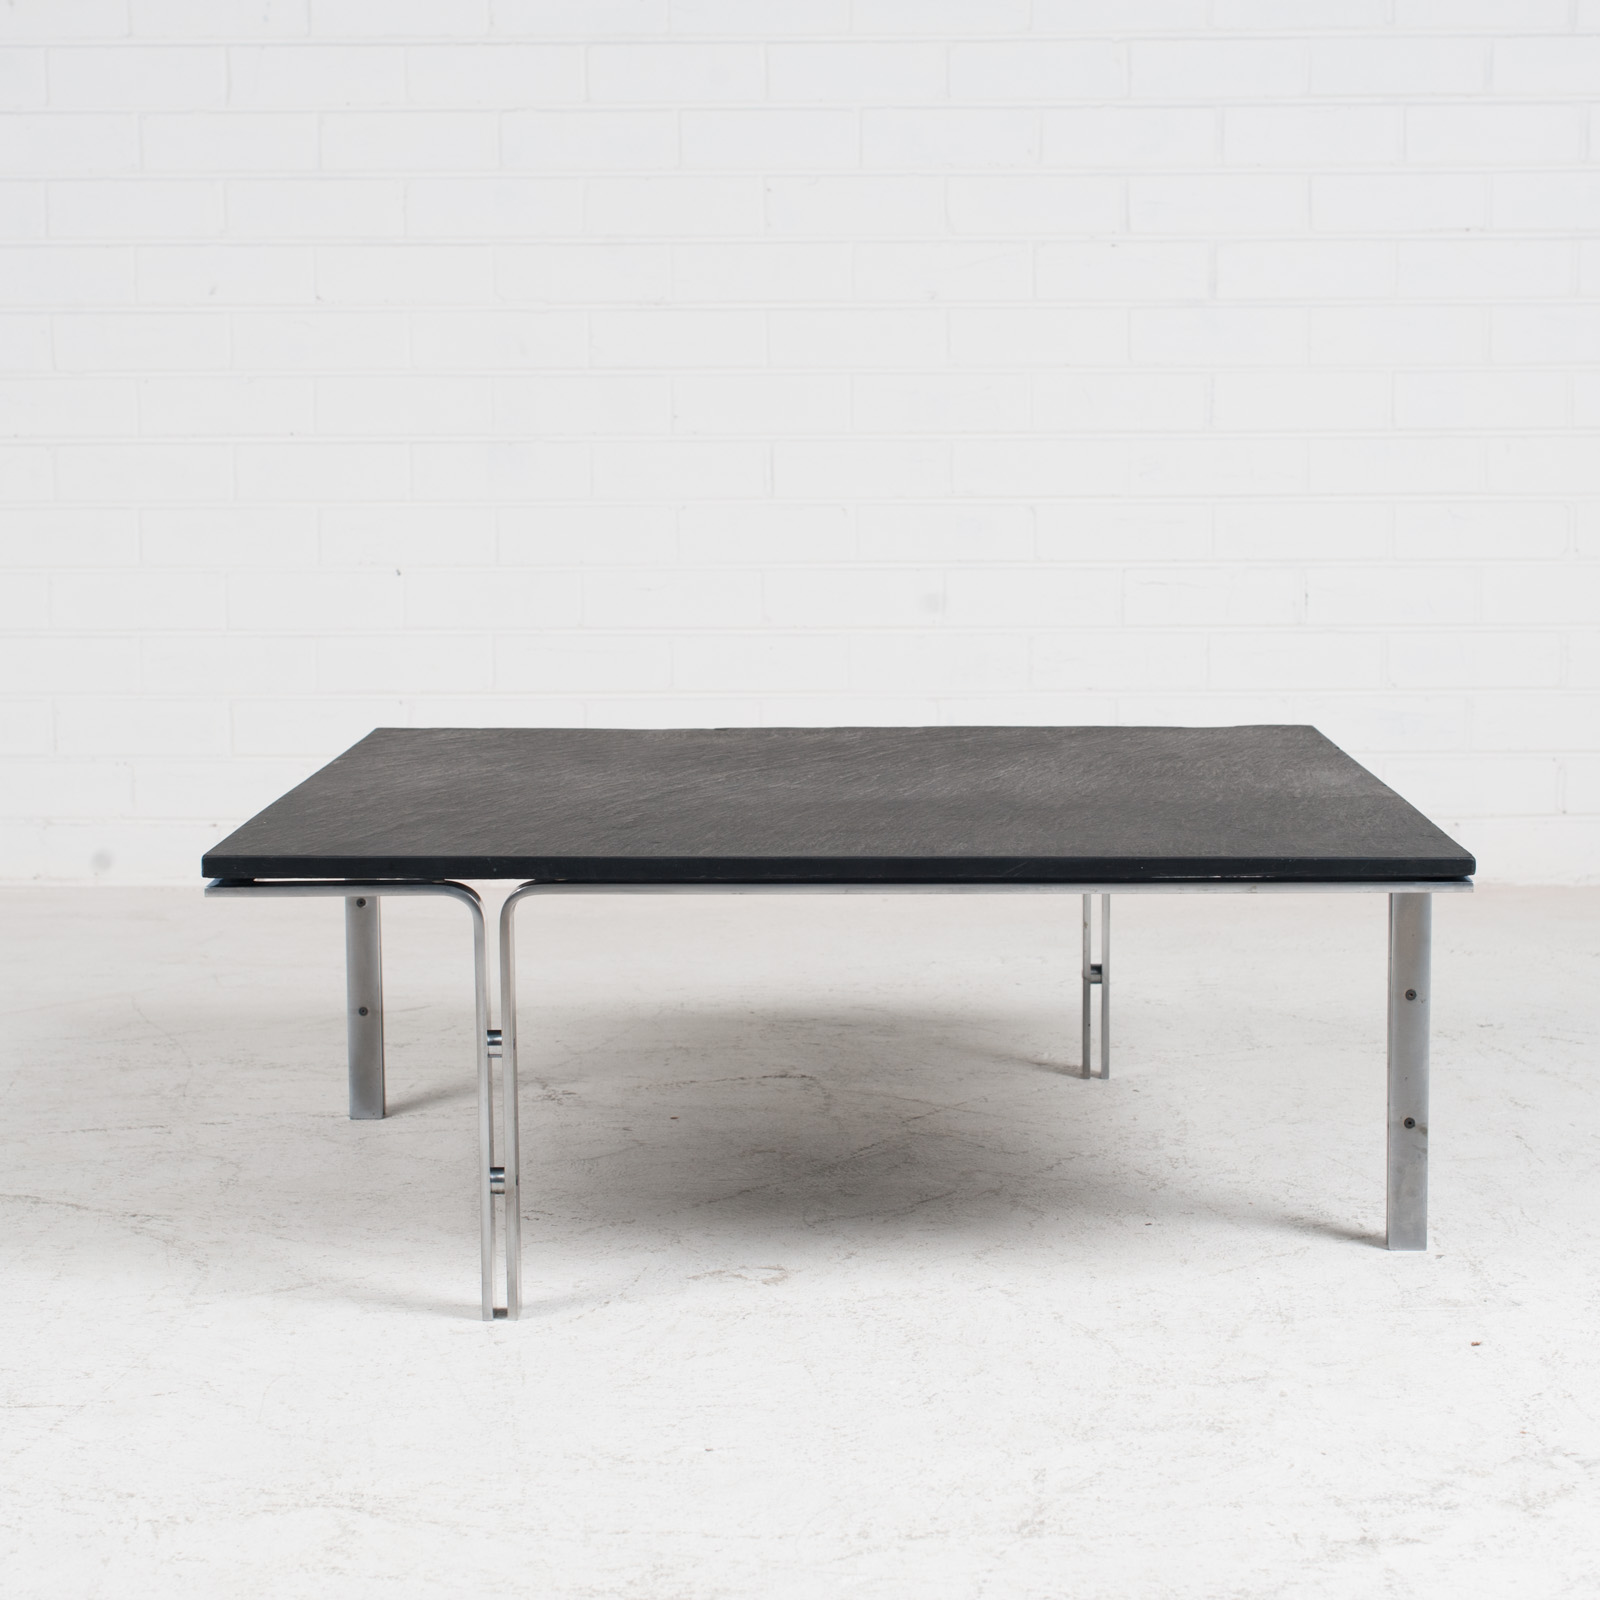 Coffee Table By Hank Kwint For Metaform In Slate And Chrome 1970s Netherlands 01